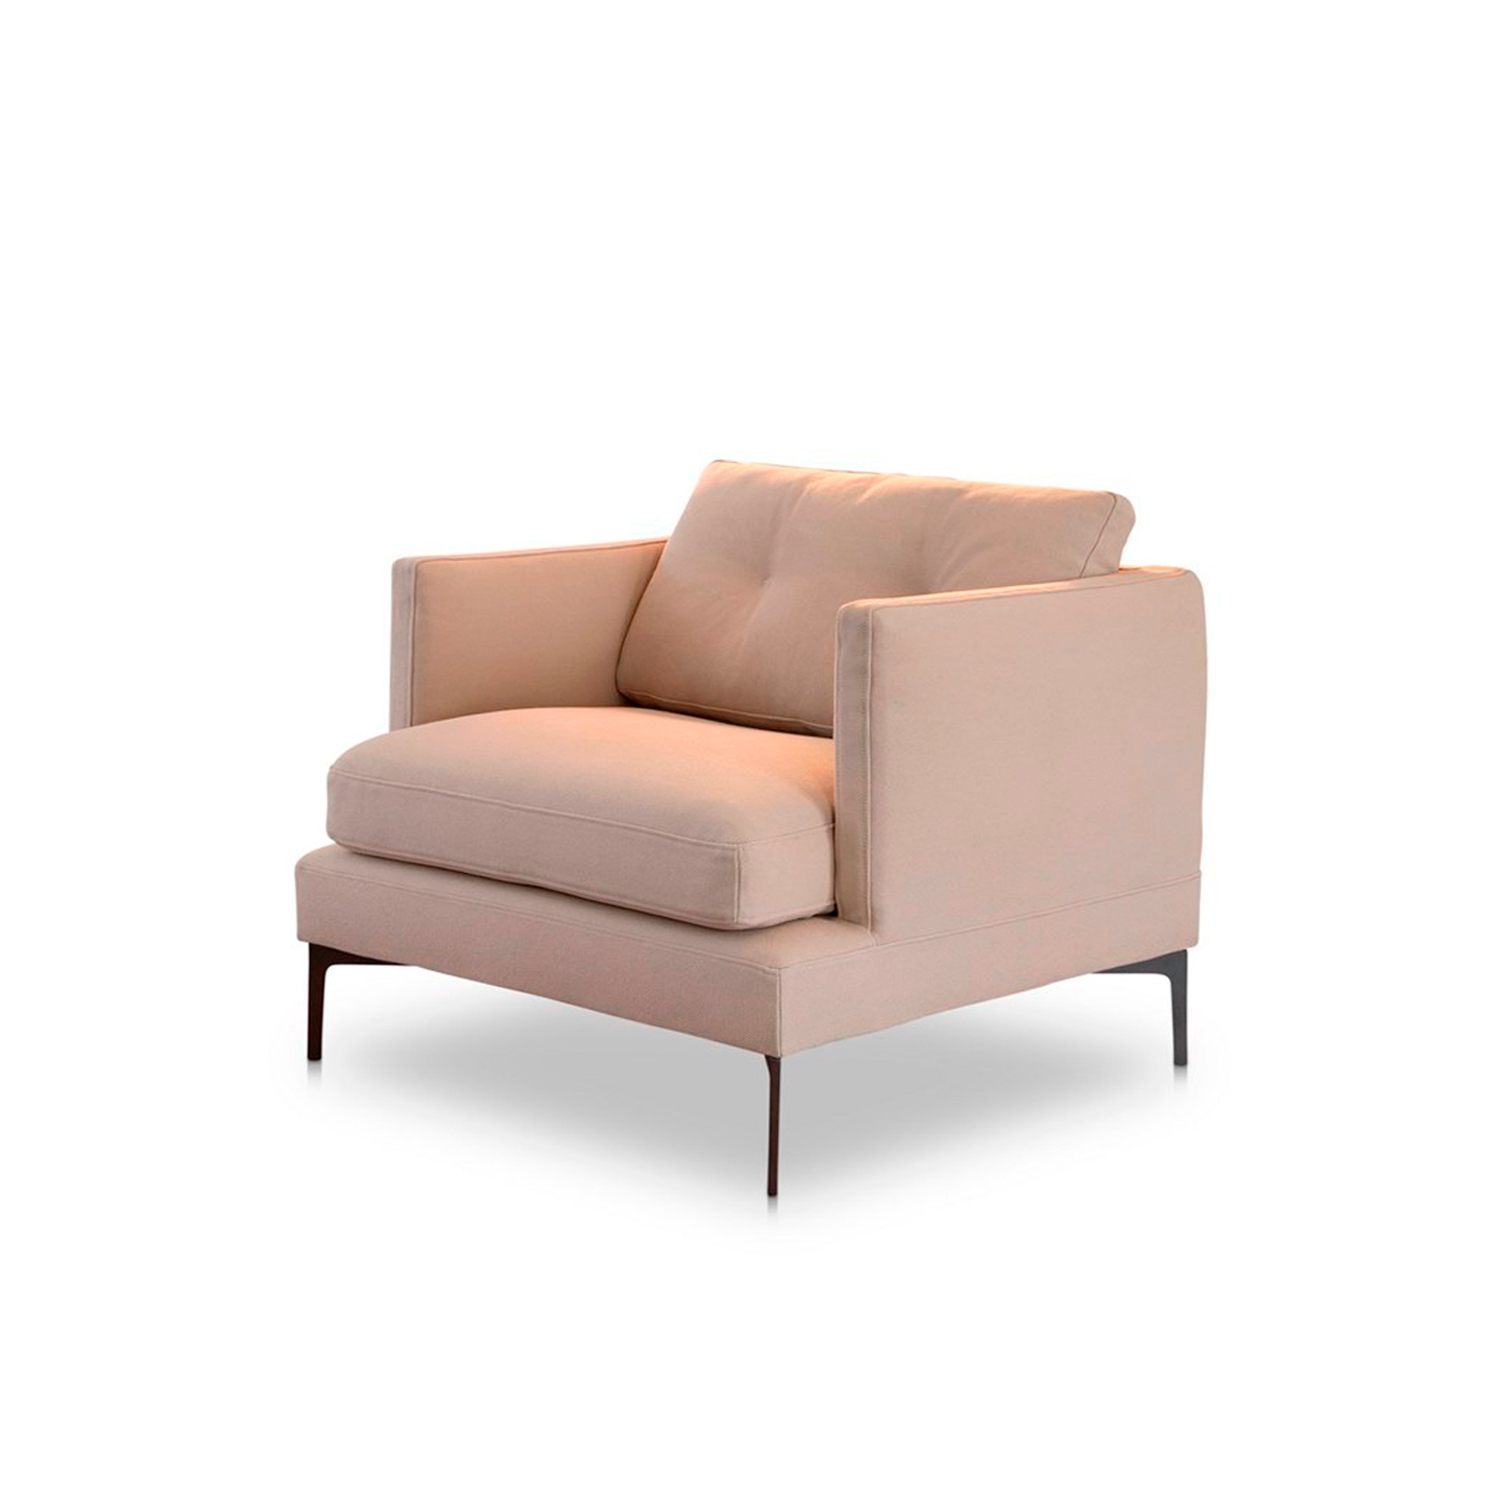 Baby Essentiel Lounge Armchair  - The Baby Essentiel armchair offers a contained seating solution that follows the same design as the sofa and exhibits a form without excess and with comfortable ergonomics. An armchair that recalls a certain Italian historical elegance, merging sophisticated elements with a simple outline. The attention to details that distinguishes Saba can be found in the quilted cushions and in the thin painted legs that support the armchair. Also available with a grosgrain cord trim. Fully removable covers.  Additional removable cover is available, please enquire for prices.  Essentiel, the new Saba line, presents itself with a clear purpose.A design without excess and with friendly ergonomics represents a mix of historic Italian elegance and northern traits, merging harmonious elements in the space-time map of design.Attention to detail, a feature that has always characterized Saba collections, can be noticed in the quilting of the back rest cushions, in the canetè rope borders (gray or rope) and the particular corten painted leg rest.With essential lines that can be customized, the 67cm and 77cm back rest cushions can even be featured in the tall versions with support rollers.The modules include a wide range of sofas, lateral elements, peninsulas and terminal elements, suitable for any design need.The Essentiel armchair rounds out this timeless project with its sophisticated allure.  Materials Structure in wood padded with variable-density polyurethane foam, covered with fine velvet coupled with resin 200gr/sqm. Feat 17 cm high in shaped metal painted finish. The seat cuschions are padded with variable-density polyurethane foam, covered with polyester fiber 350gr/sqm. The back cushions are in polyester fiber mixed with washed and sterilized goose feather divided into sections and covered with 100% white cotton fabric anti-feather. The cylinder of high back cushions are filled with polyurethane foam core covered with fine velvet coupled with re